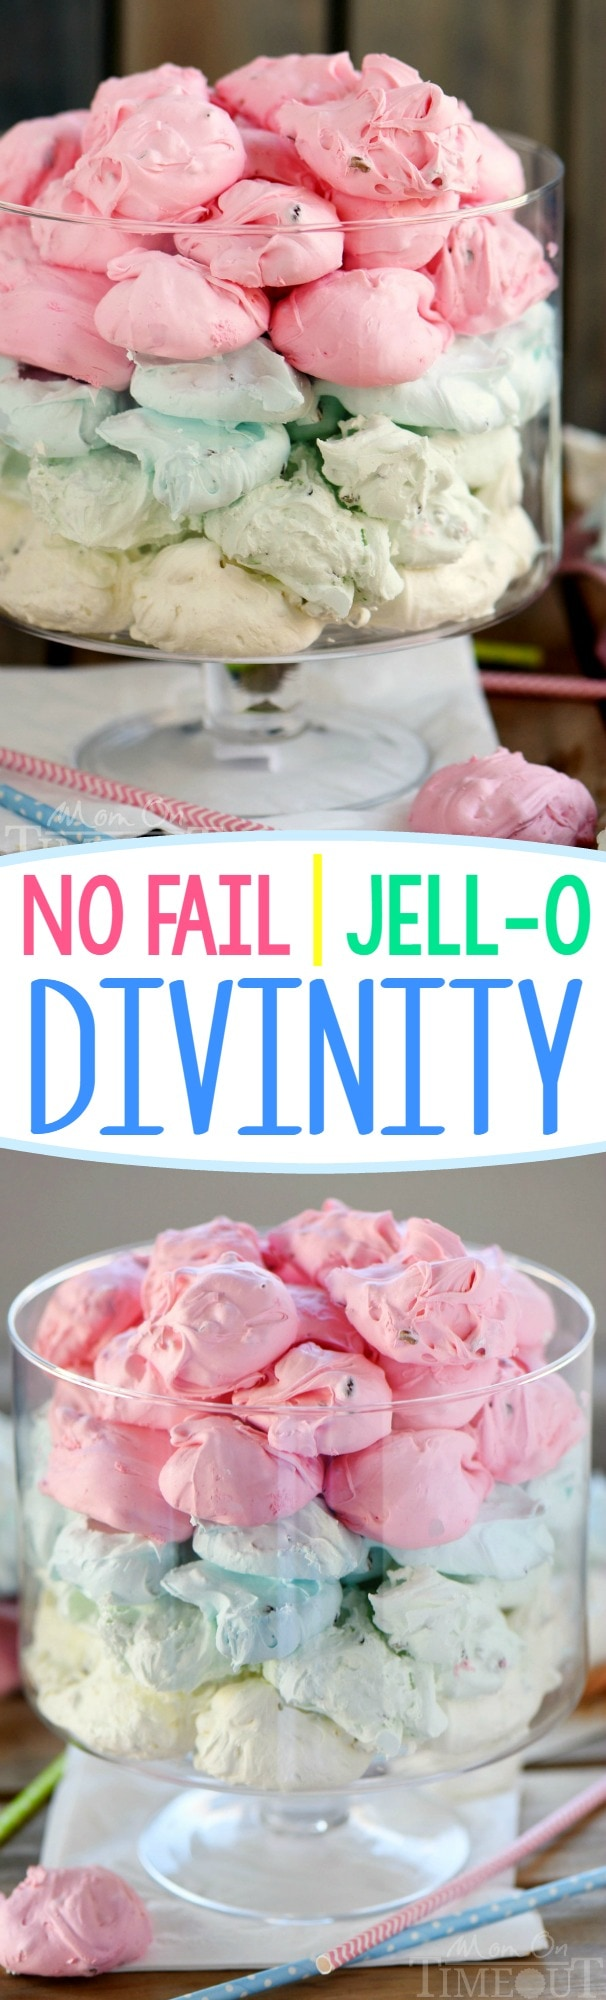 jello-divinity-recipe-collage